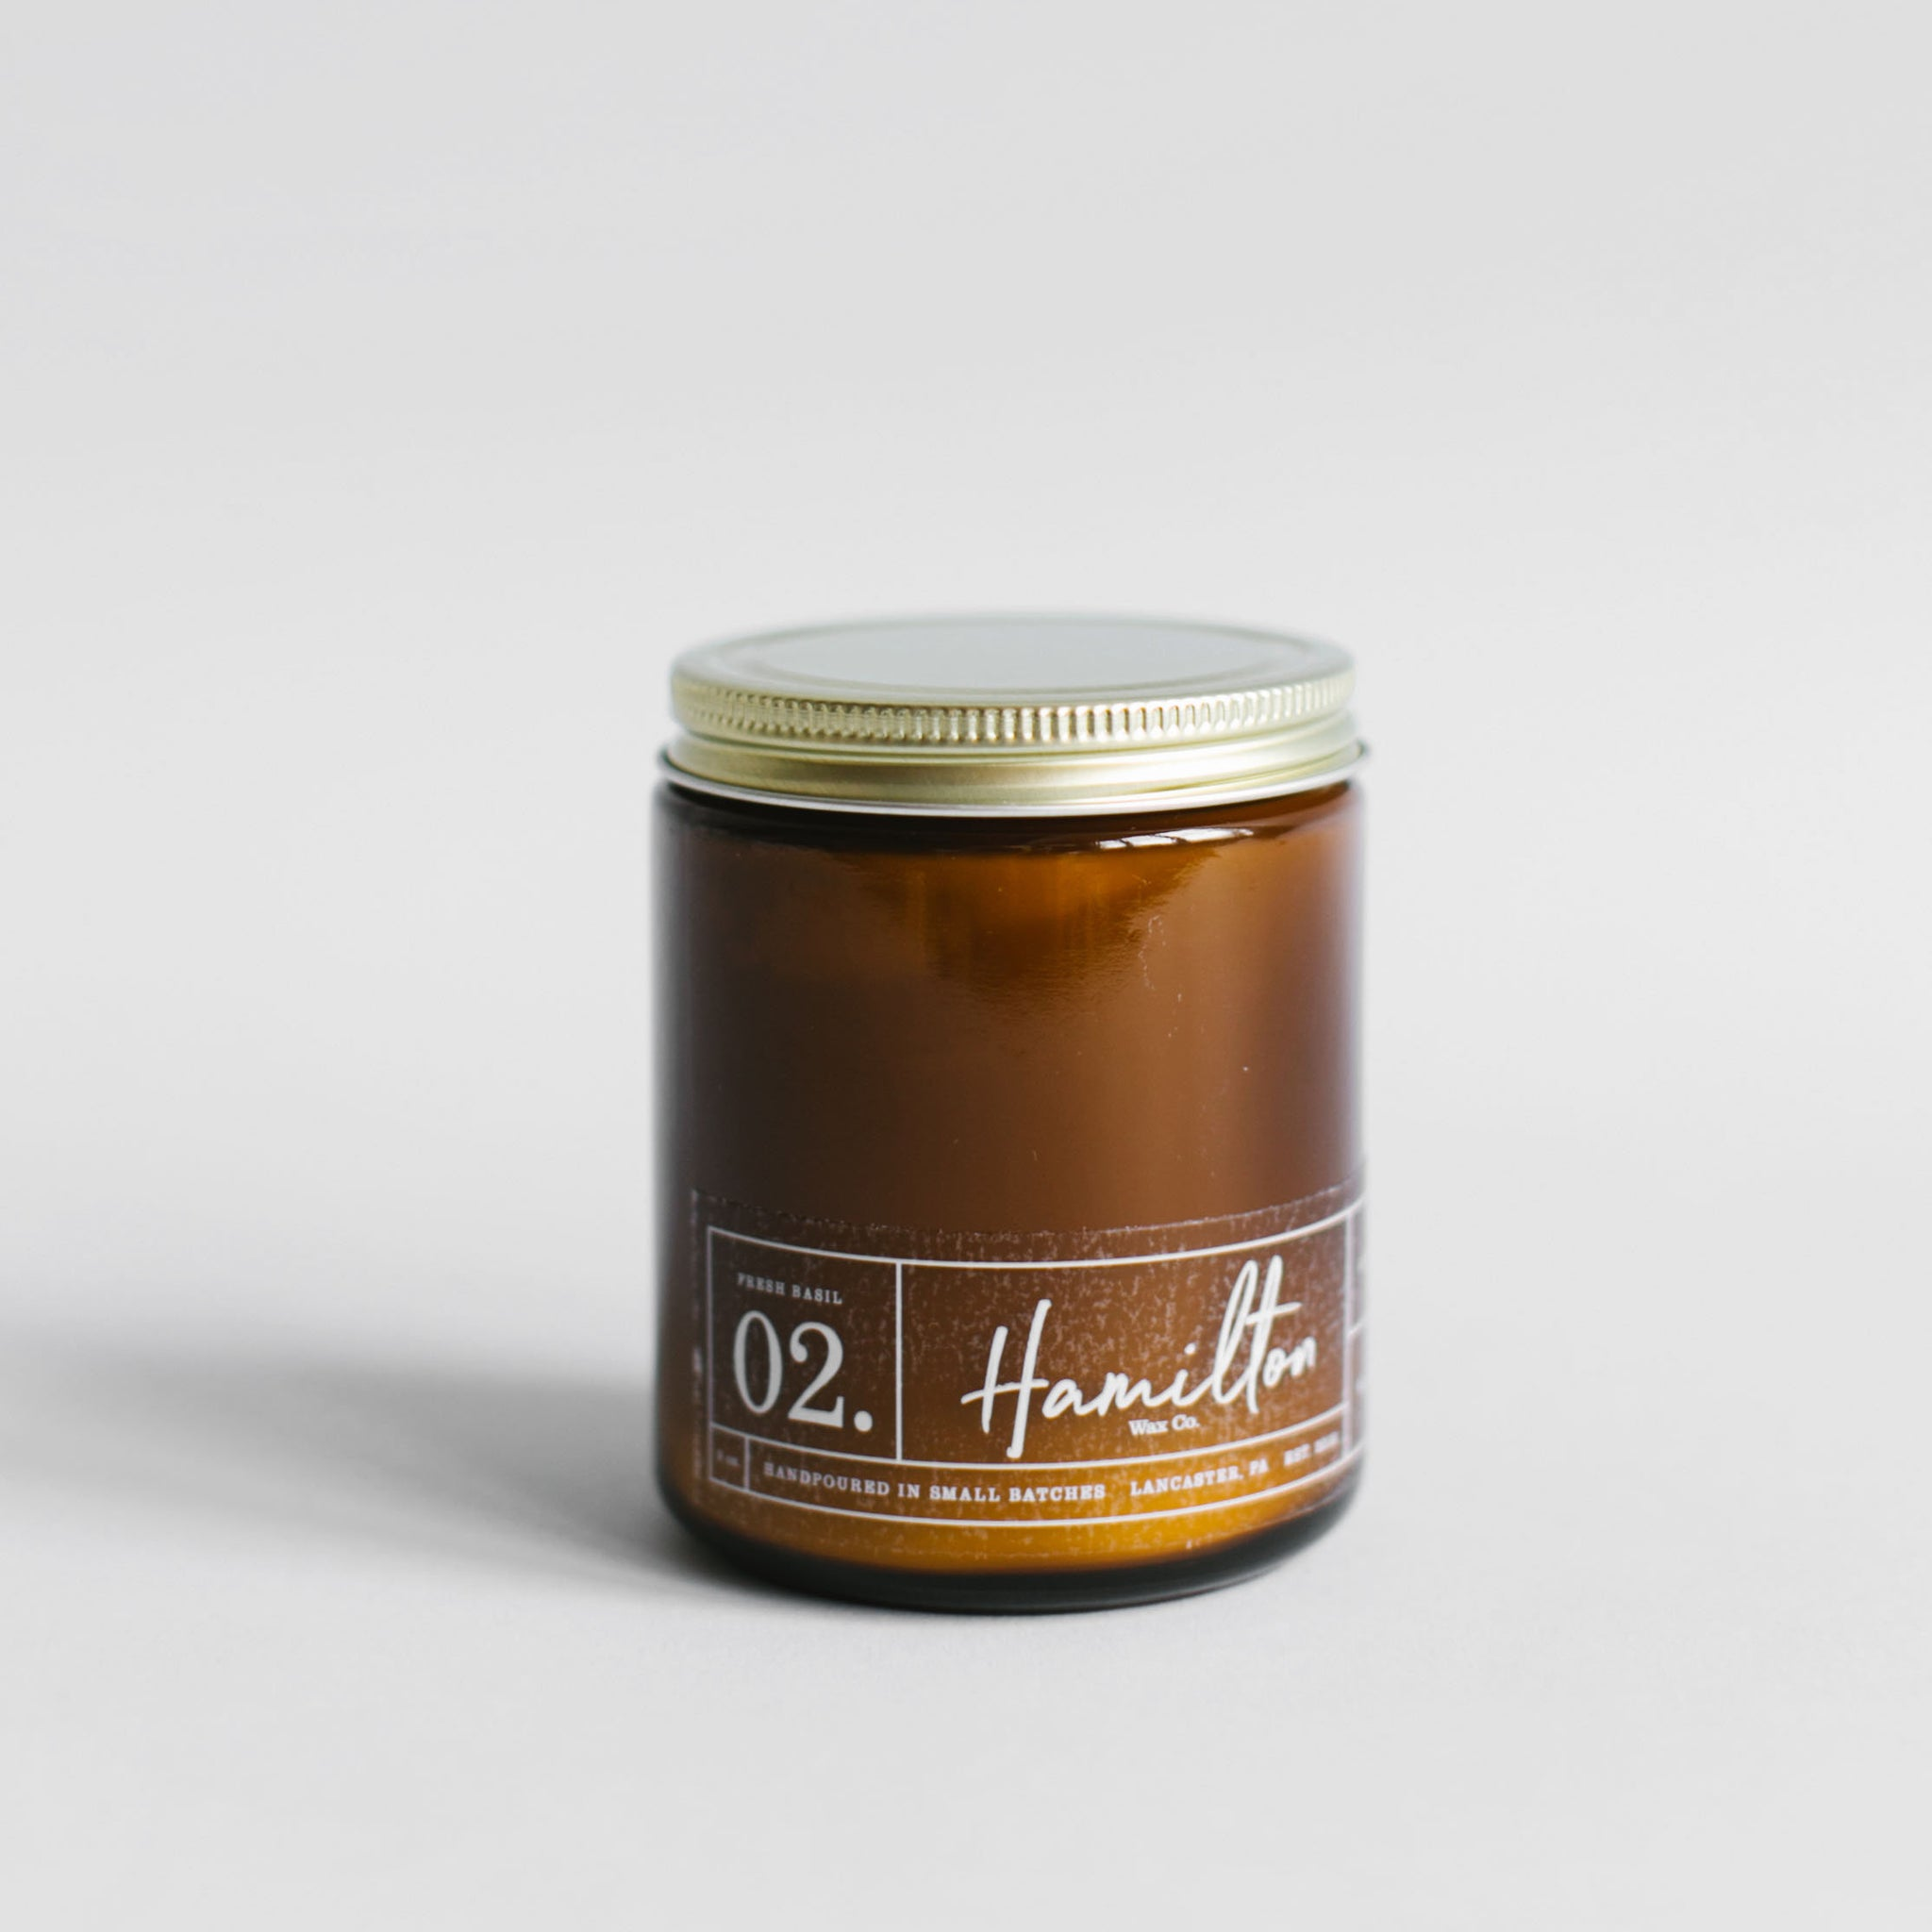 Hamilton Wax Co. - 02 Fresh Basil Scented Candle - Amber Glass Jar